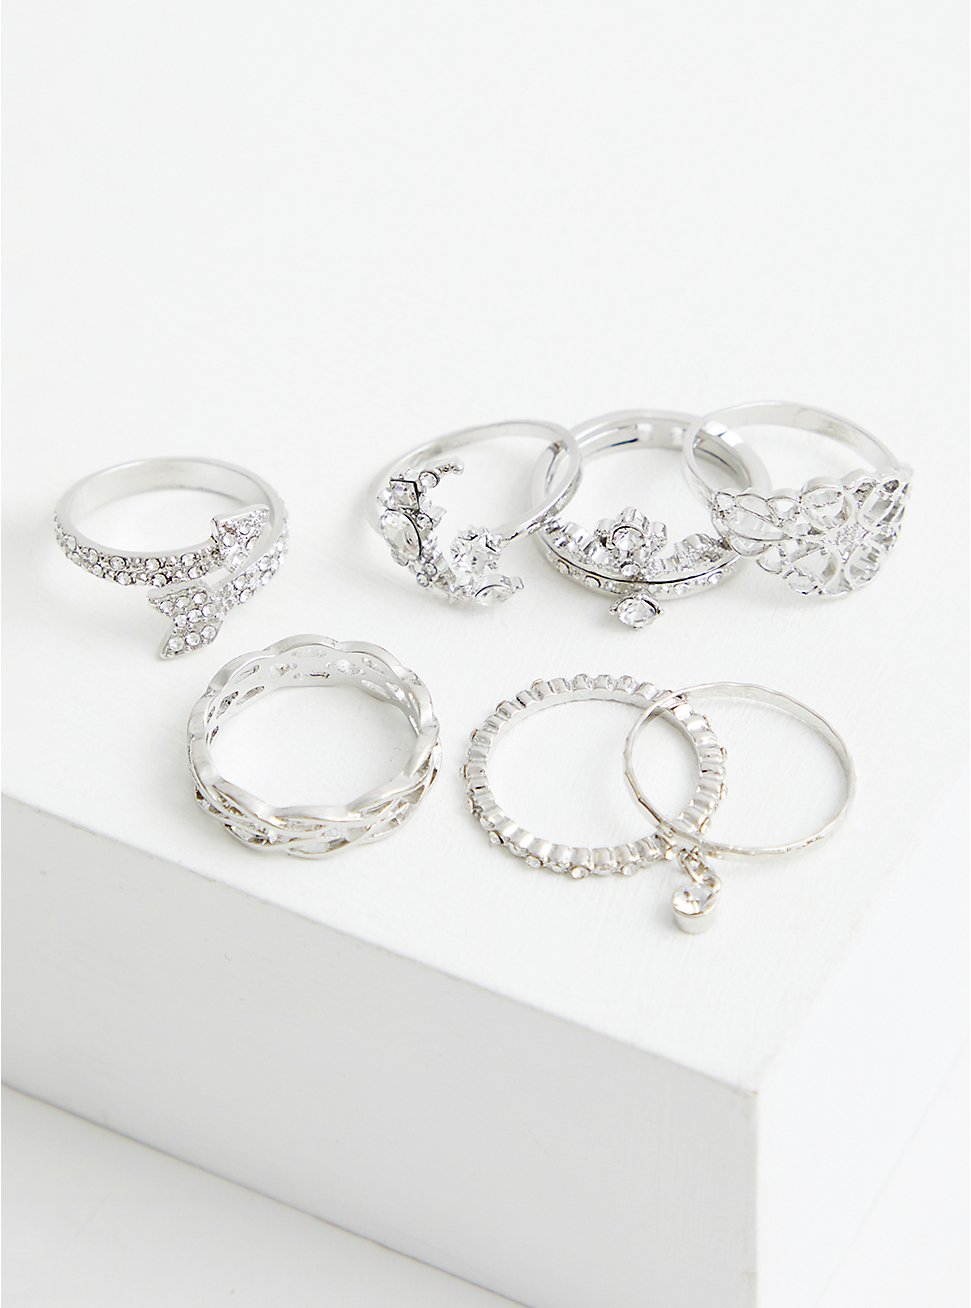 Crown & Moon Ring Set of 7 - Silver Tone , SILVER, hi-res